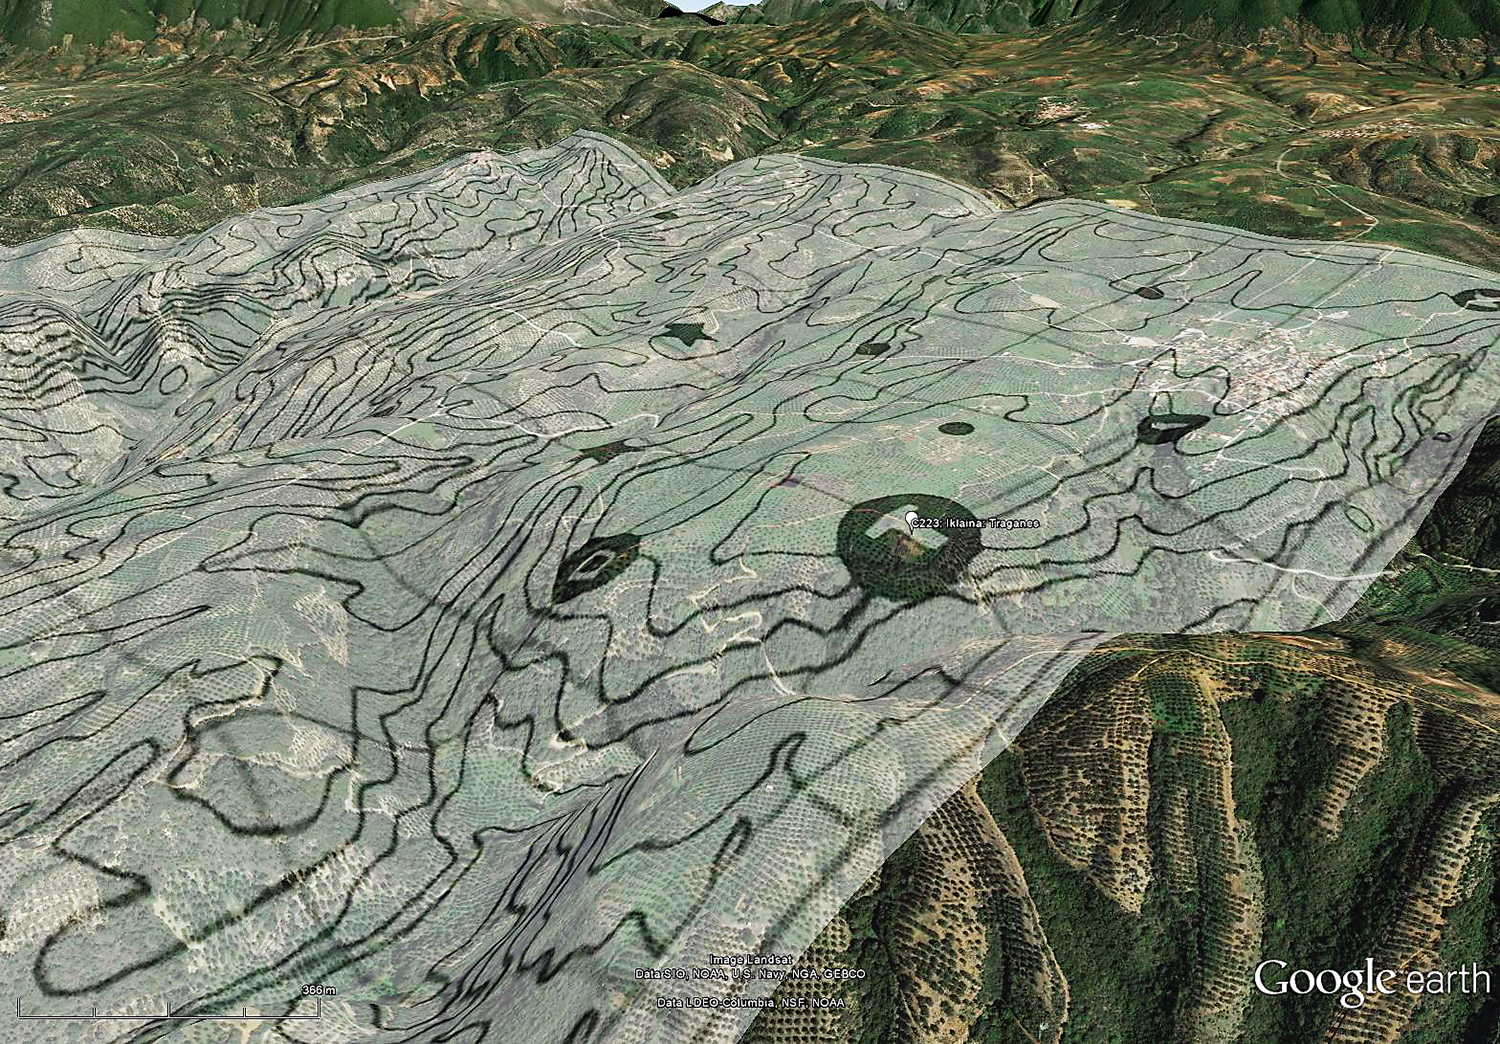 Sh sh show me my house on google earth - Illus 4 Turning On The Terrain Layer Renders Your New Overlay In 3d